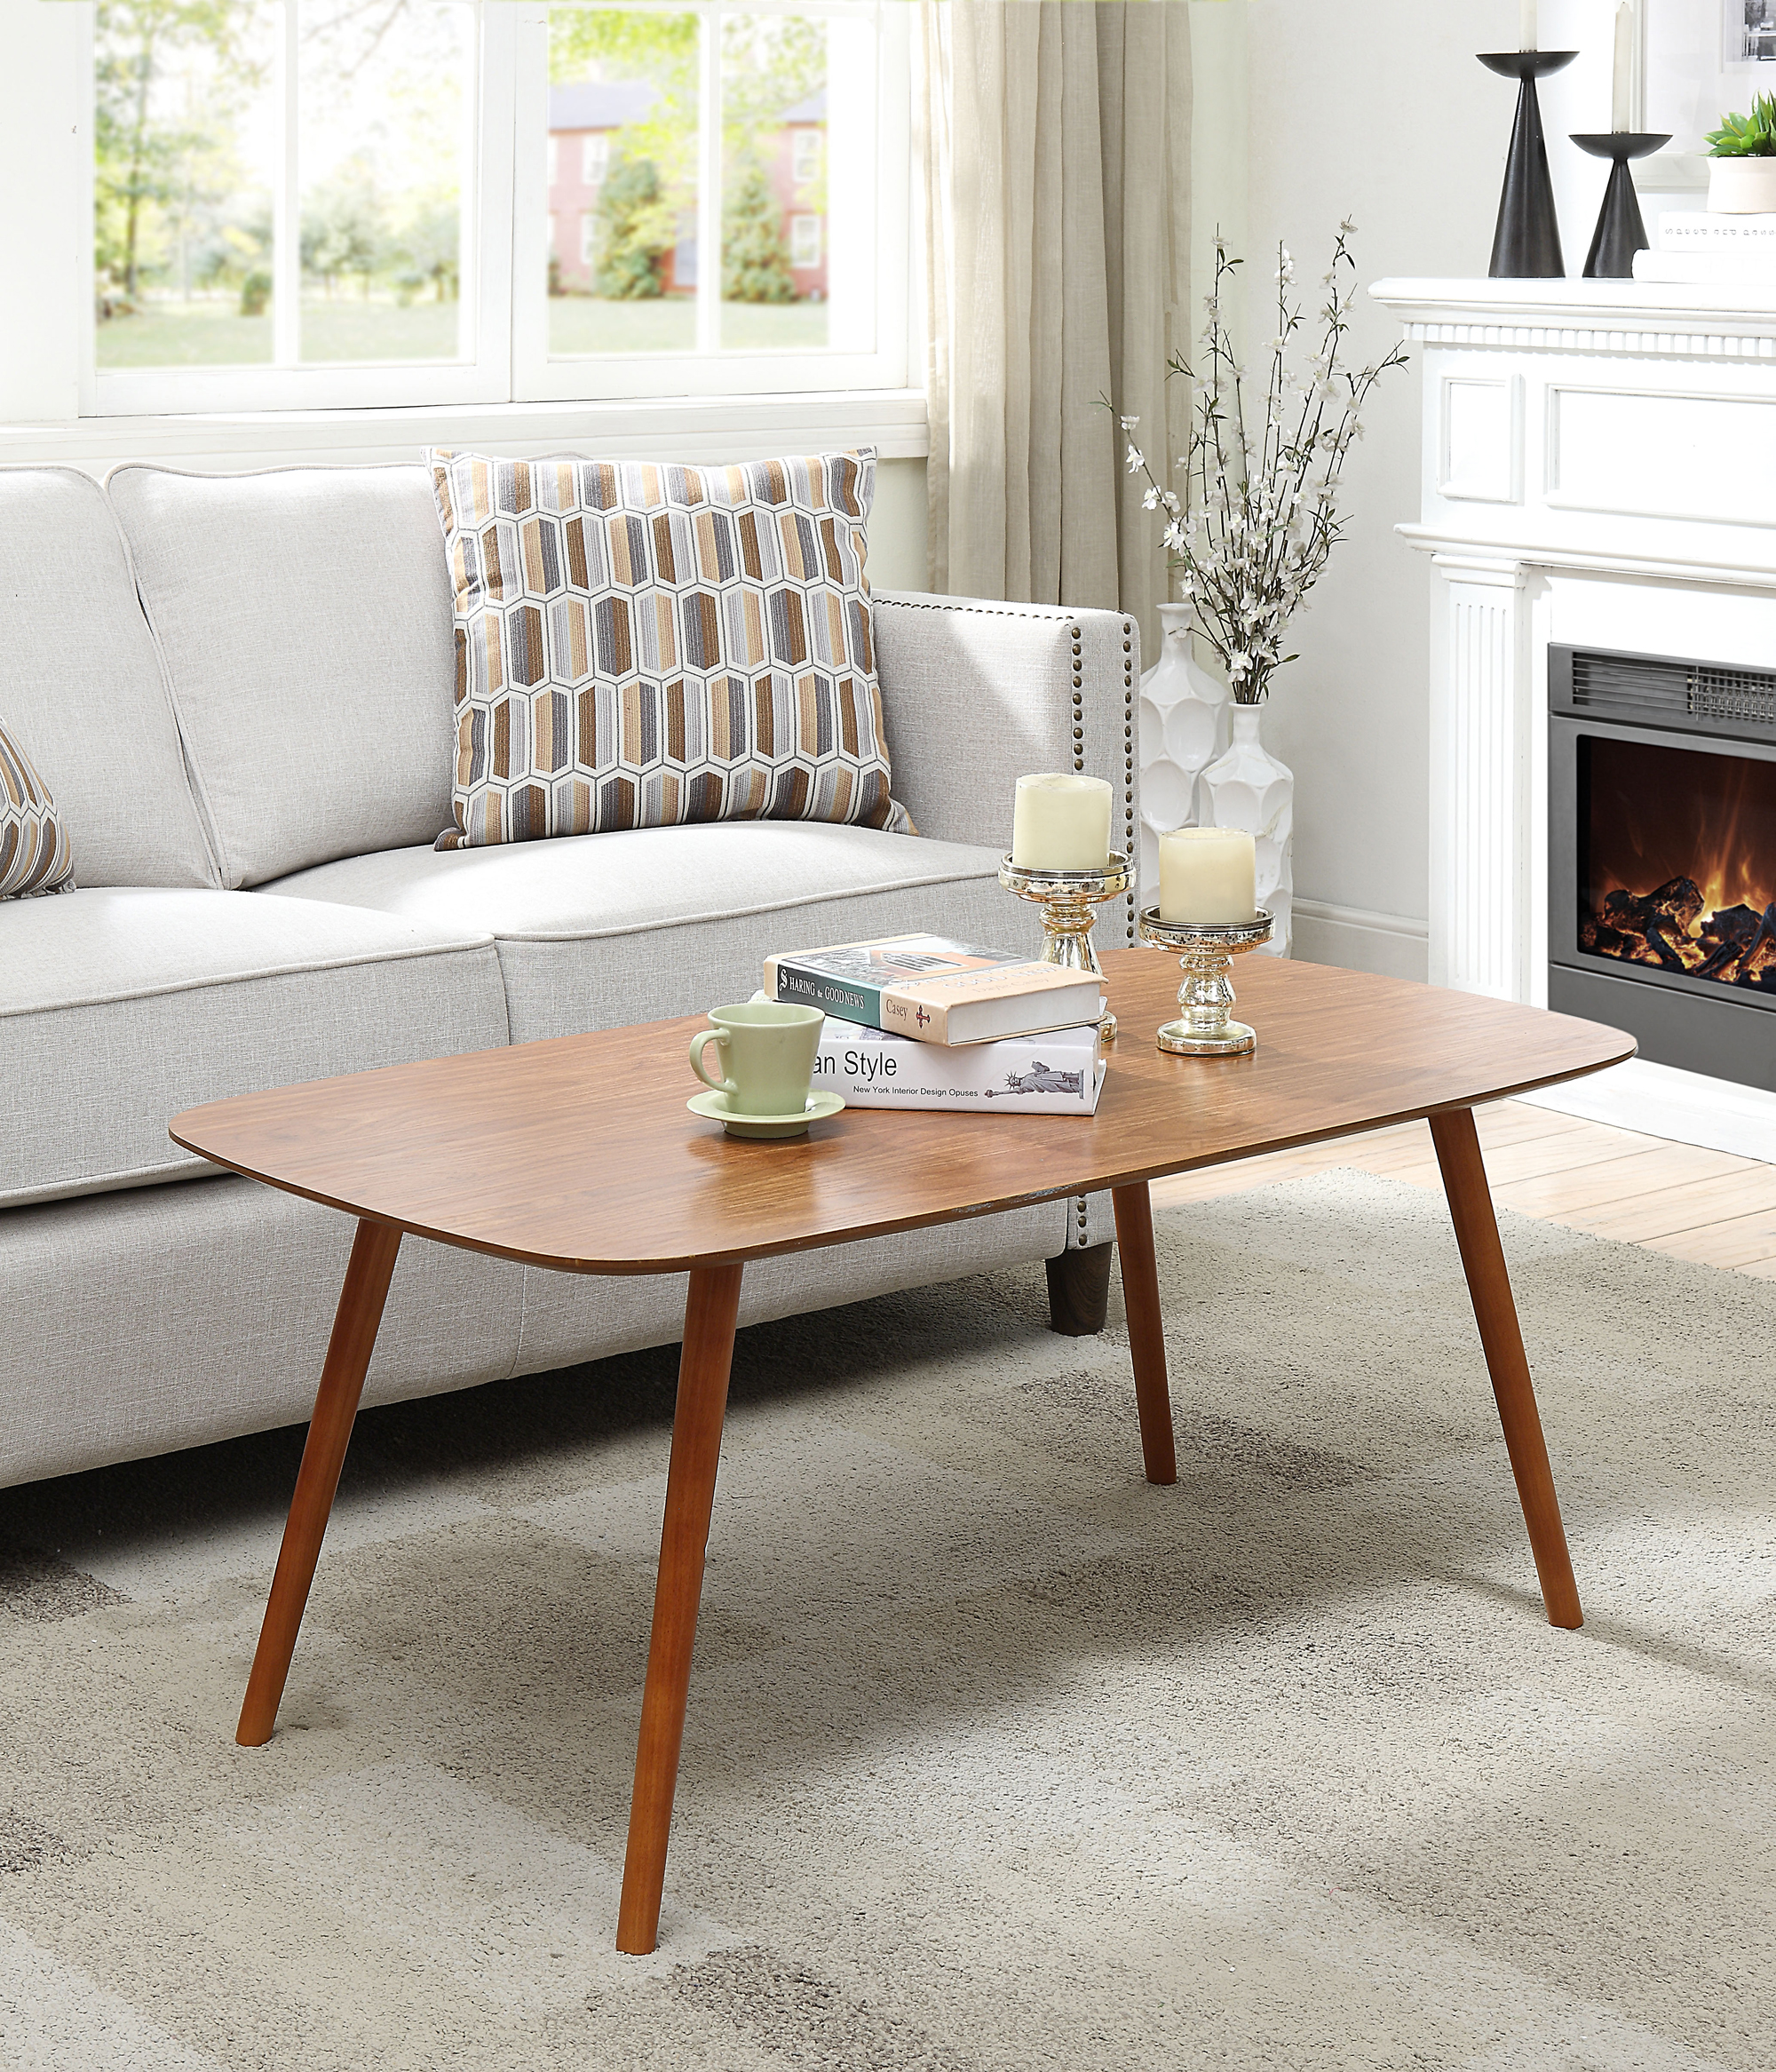 Admirable Details About Oslo Java Coffee Table S20 230 Java Finish Lamtechconsult Wood Chair Design Ideas Lamtechconsultcom